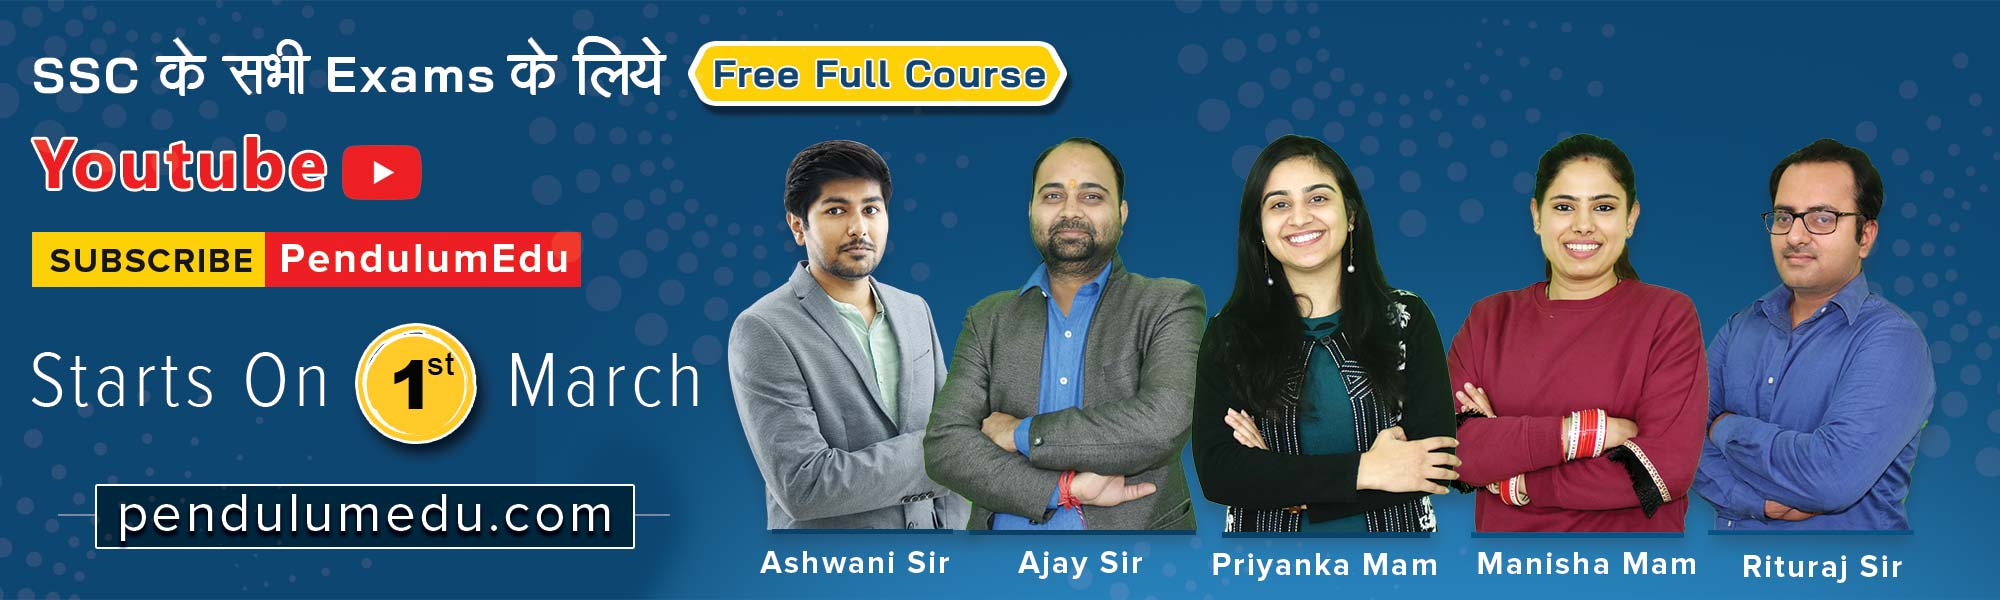 SSC Online full course by expert faculty